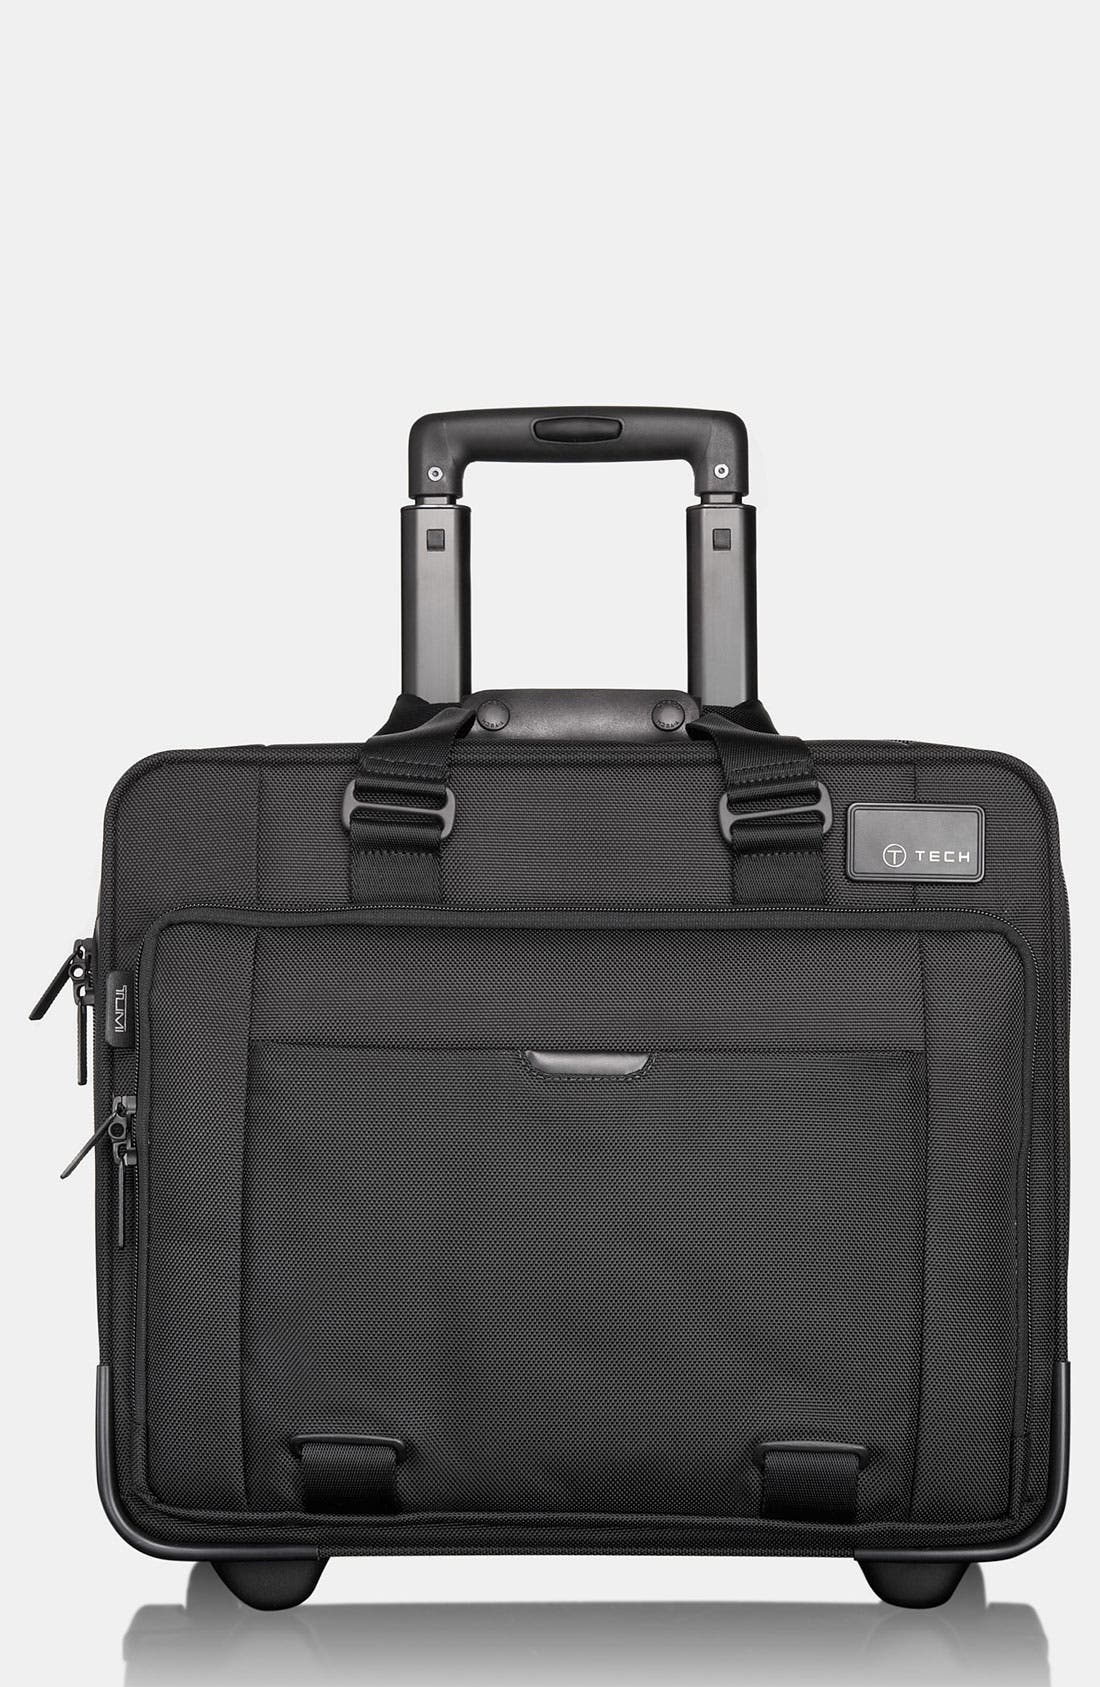 Alternate Image 1 Selected - Tumi 'T-Tech Network' Wheeled Briefcase (17 Inch)